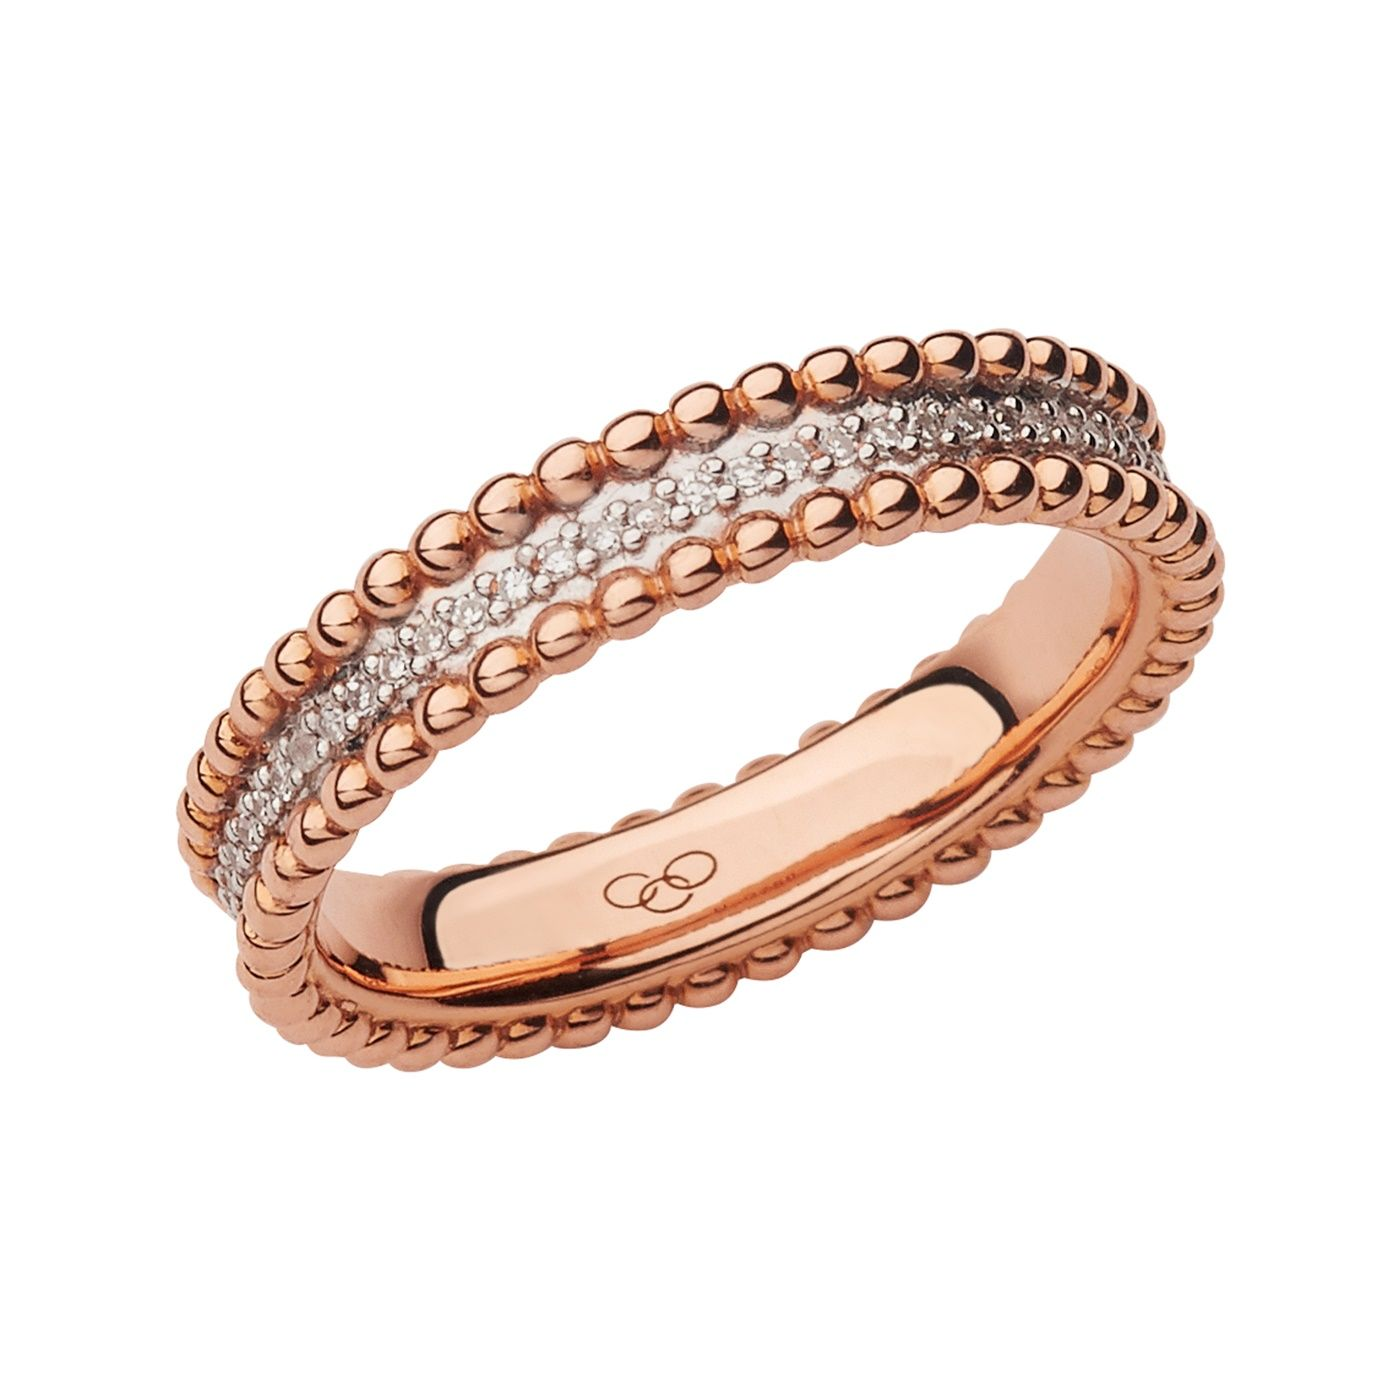 contemporary band gold and by for palladium rings sue jewellery women two or ring men wedding shop lane